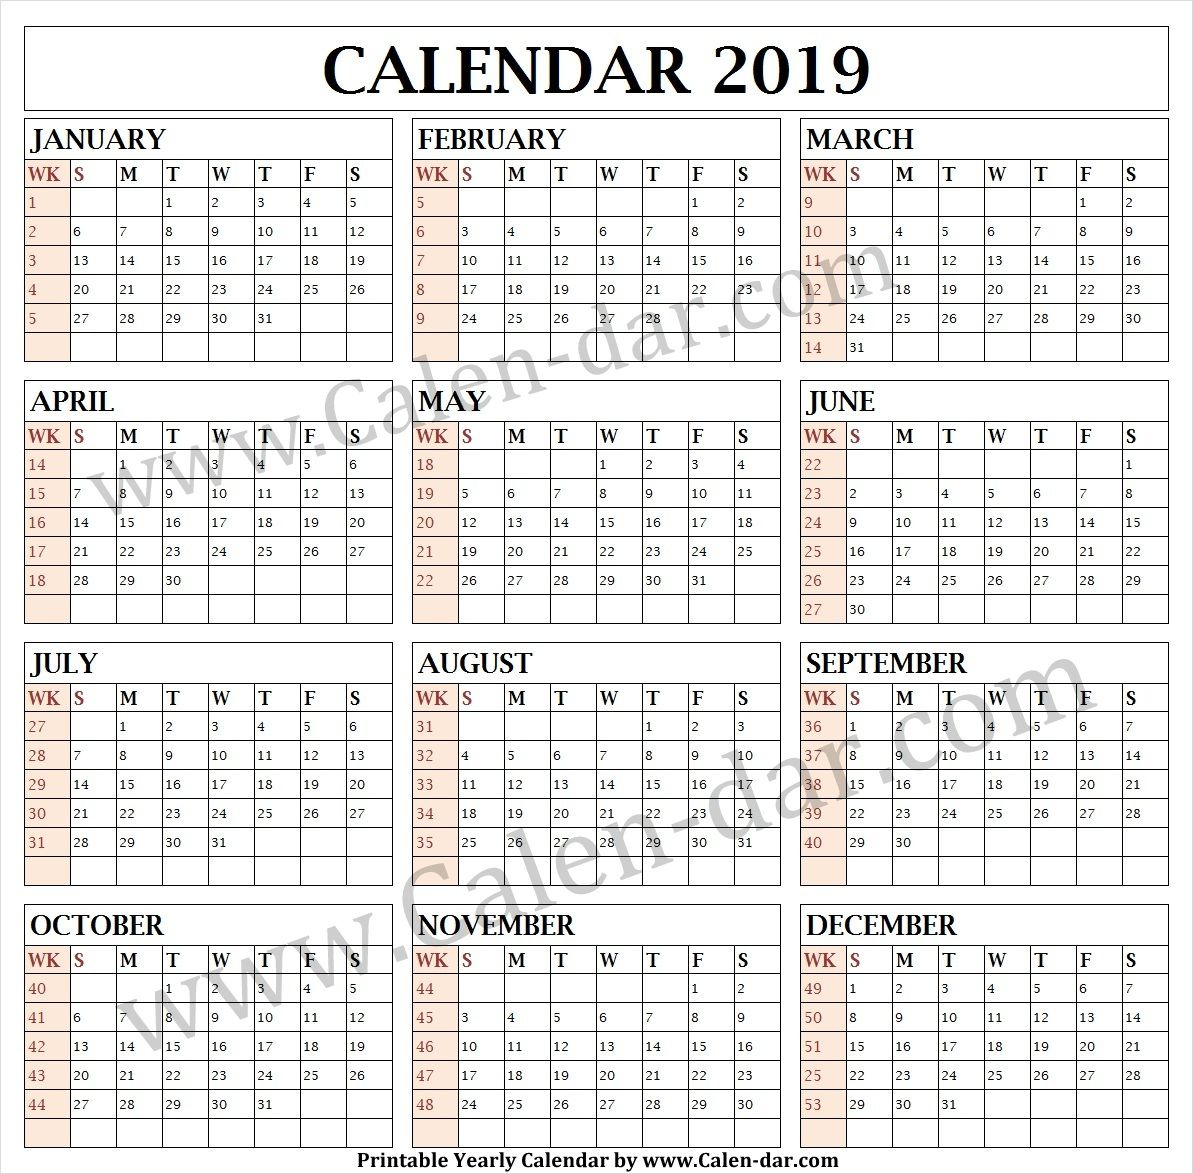 Calendar 2019 Week Wise Printable Template Calendar Print